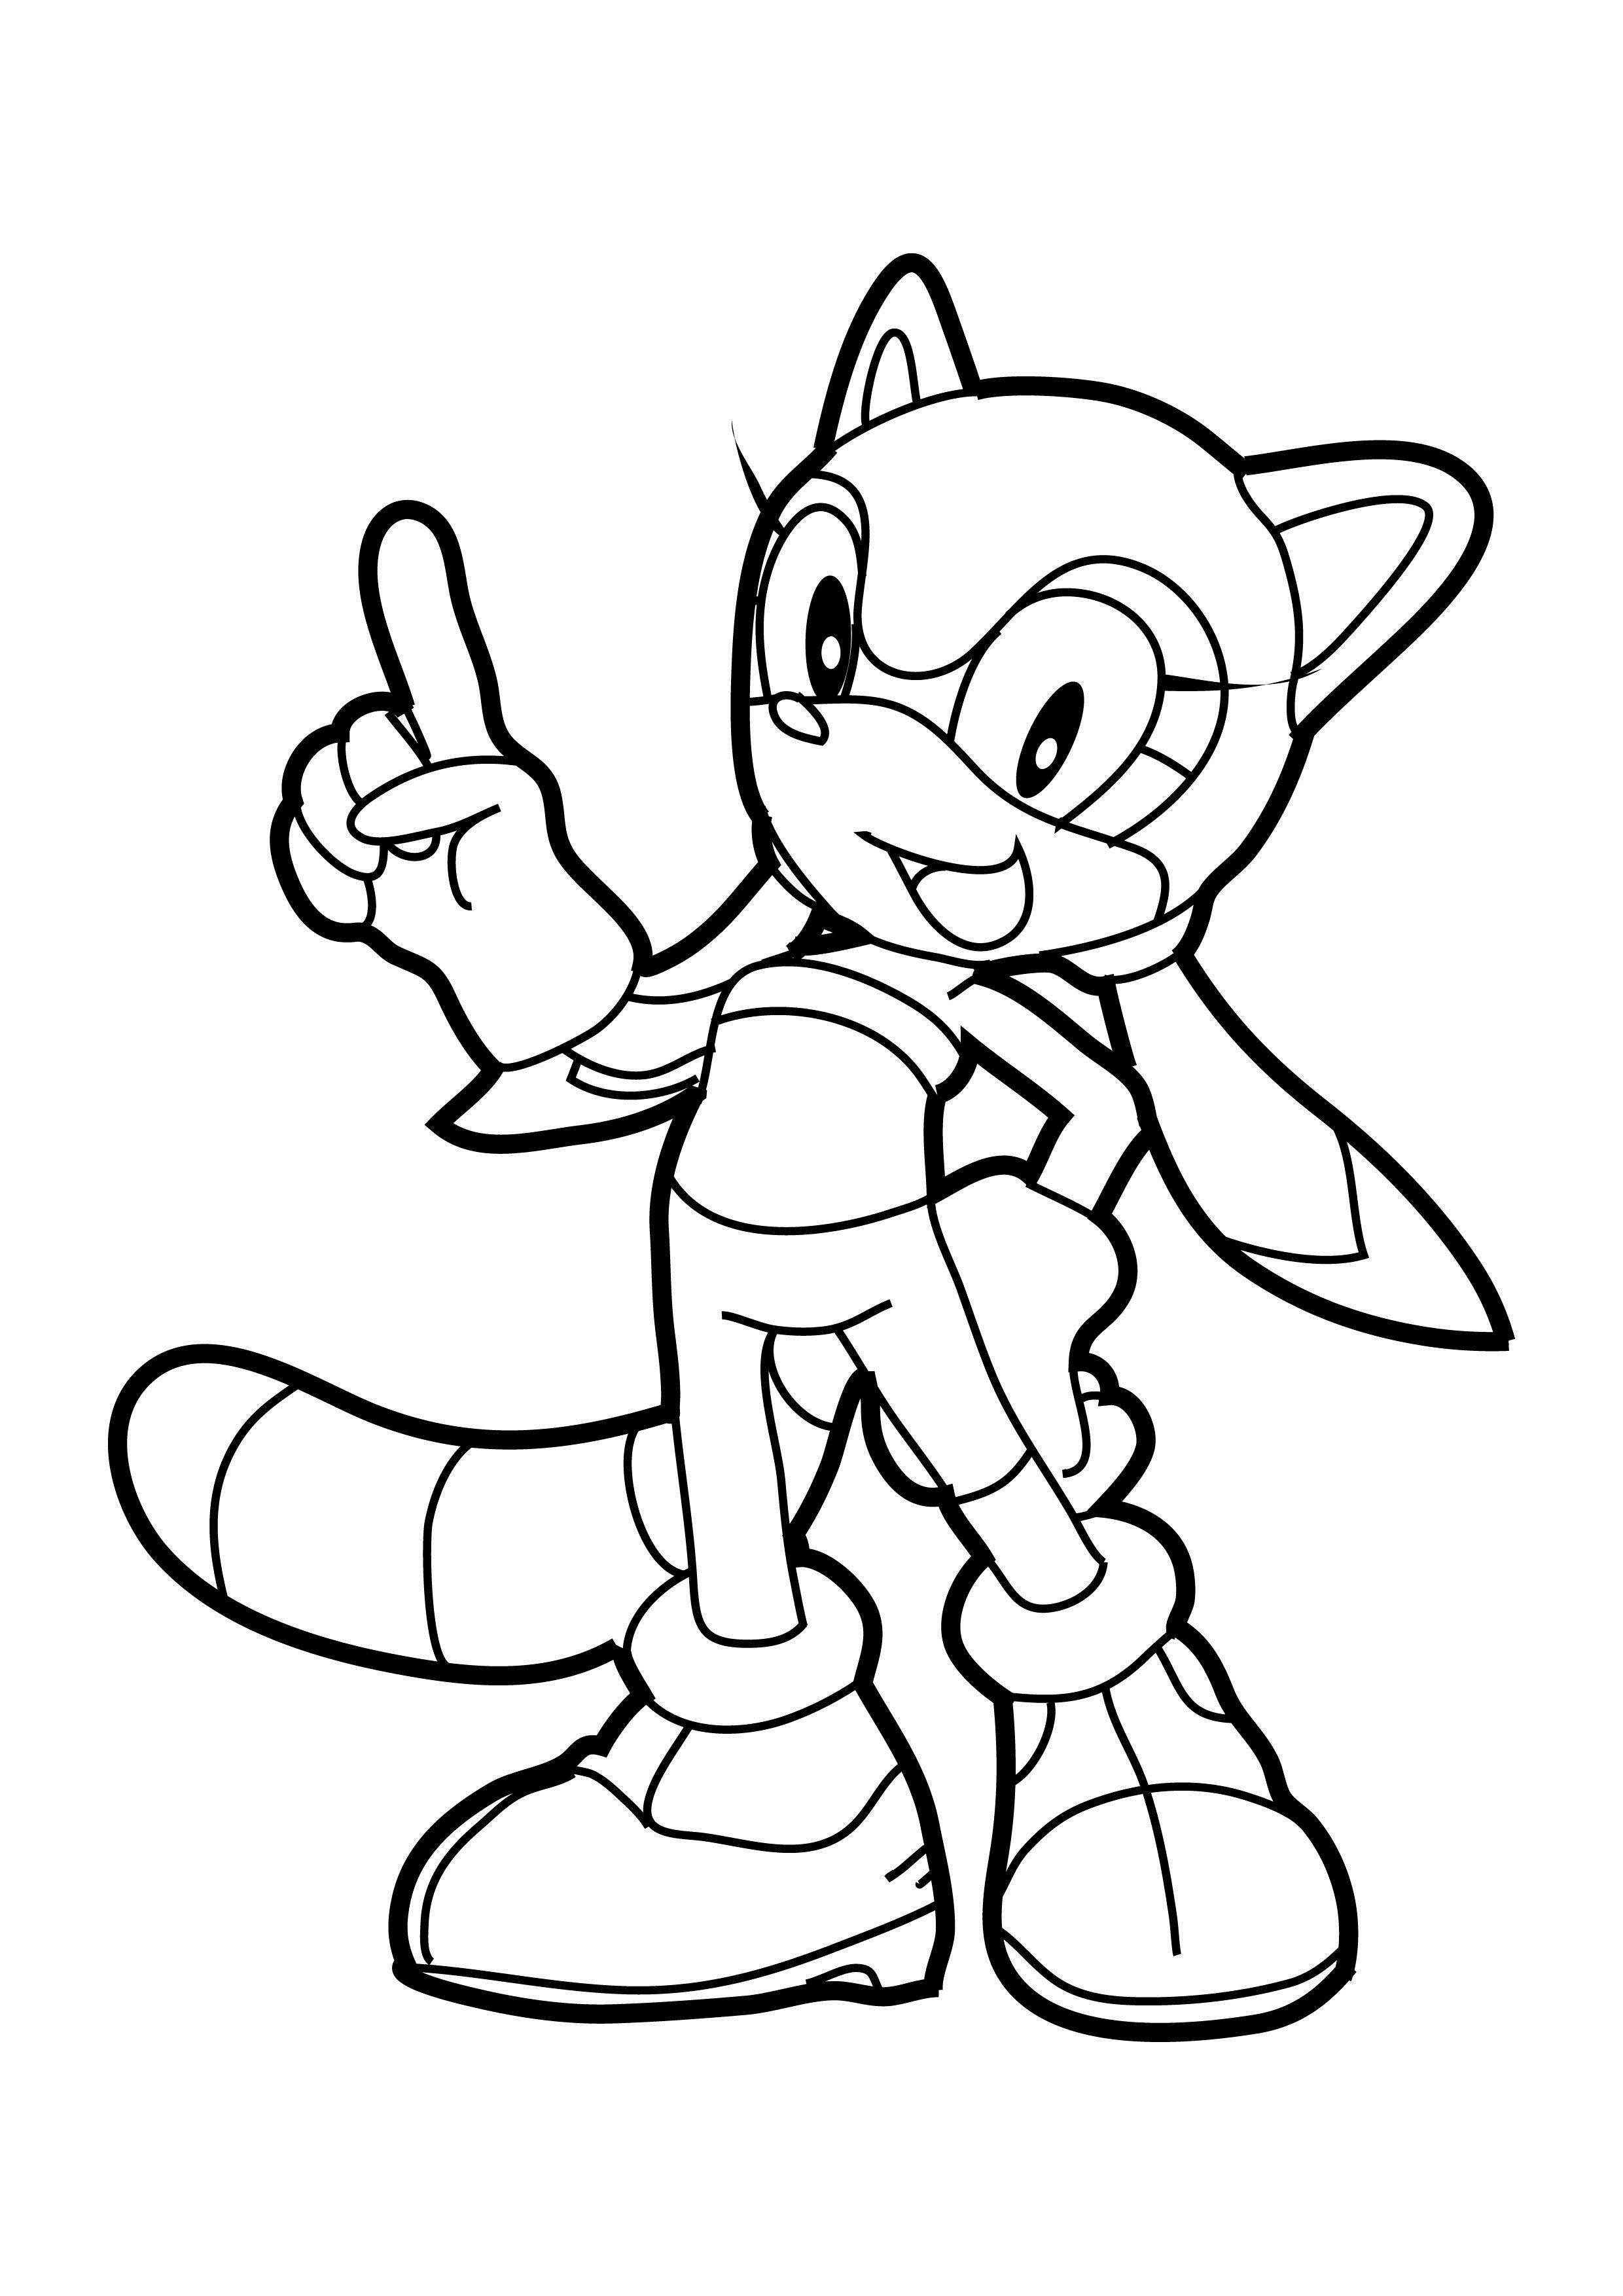 sonic the hedgehog printable coloring pages cute sonic the hedgehog coloring page hedgehog colors pages coloring printable sonic the hedgehog